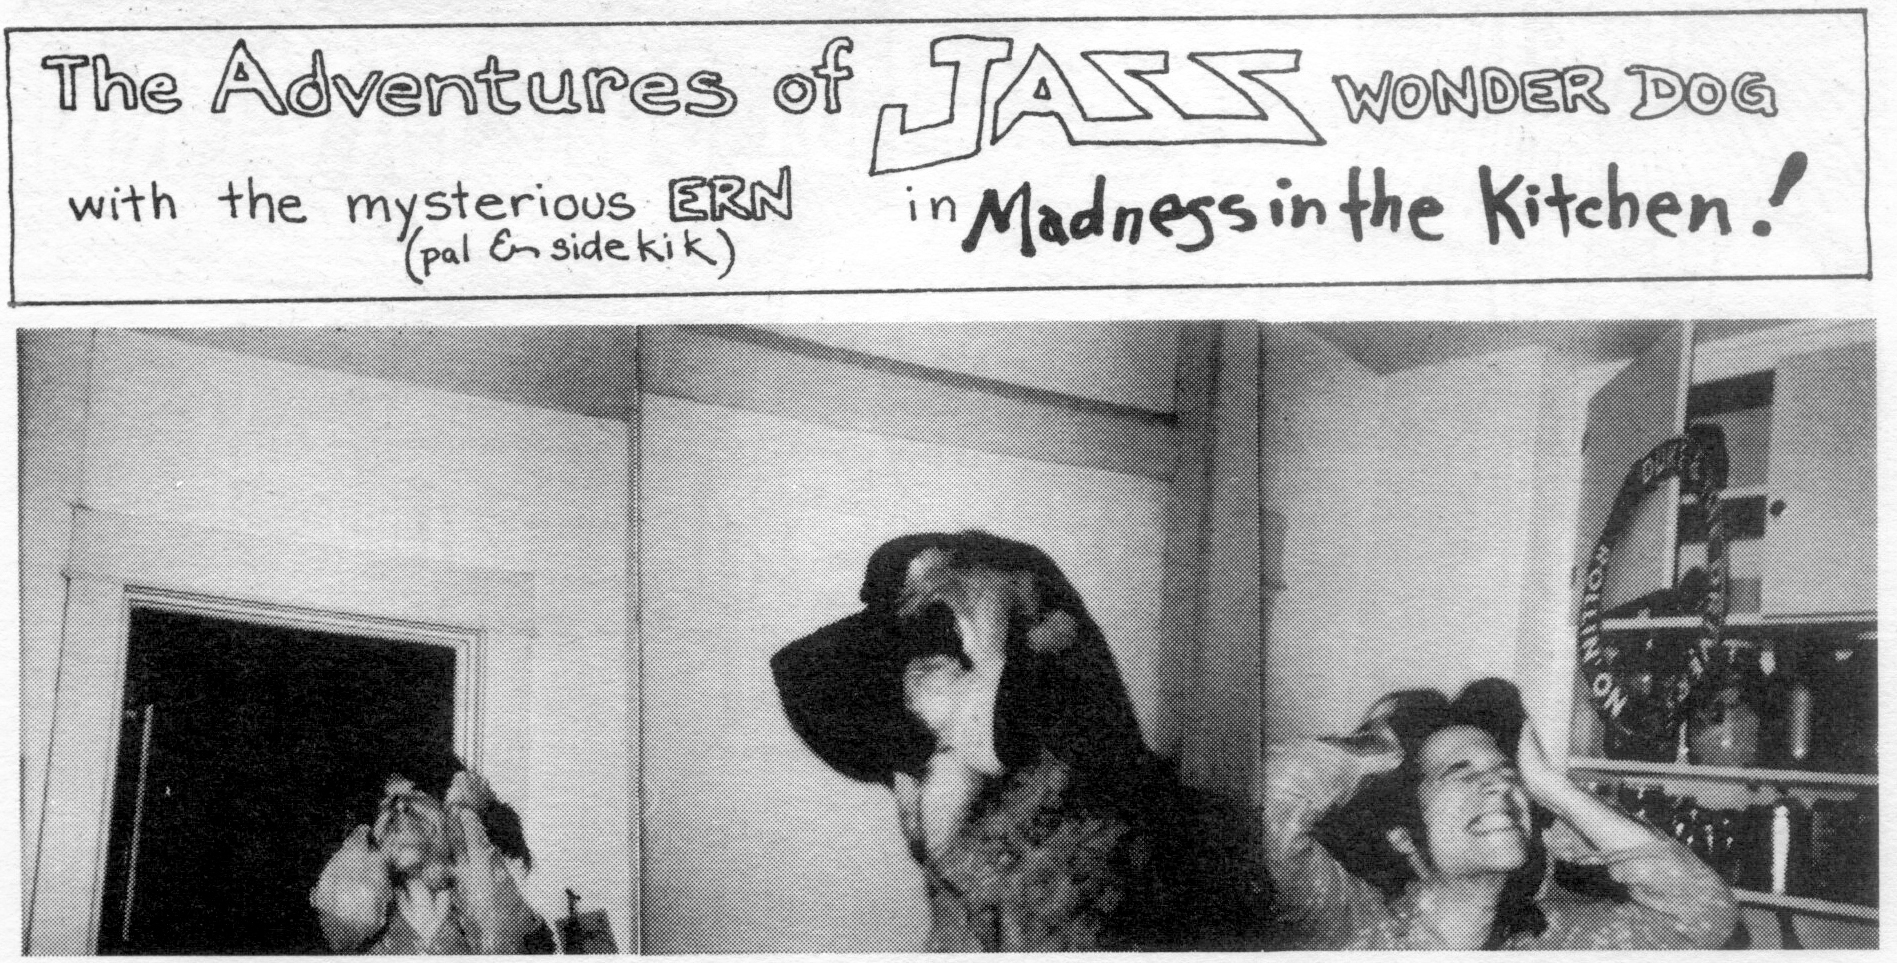 Adventure of Jazz The Wonder Dog